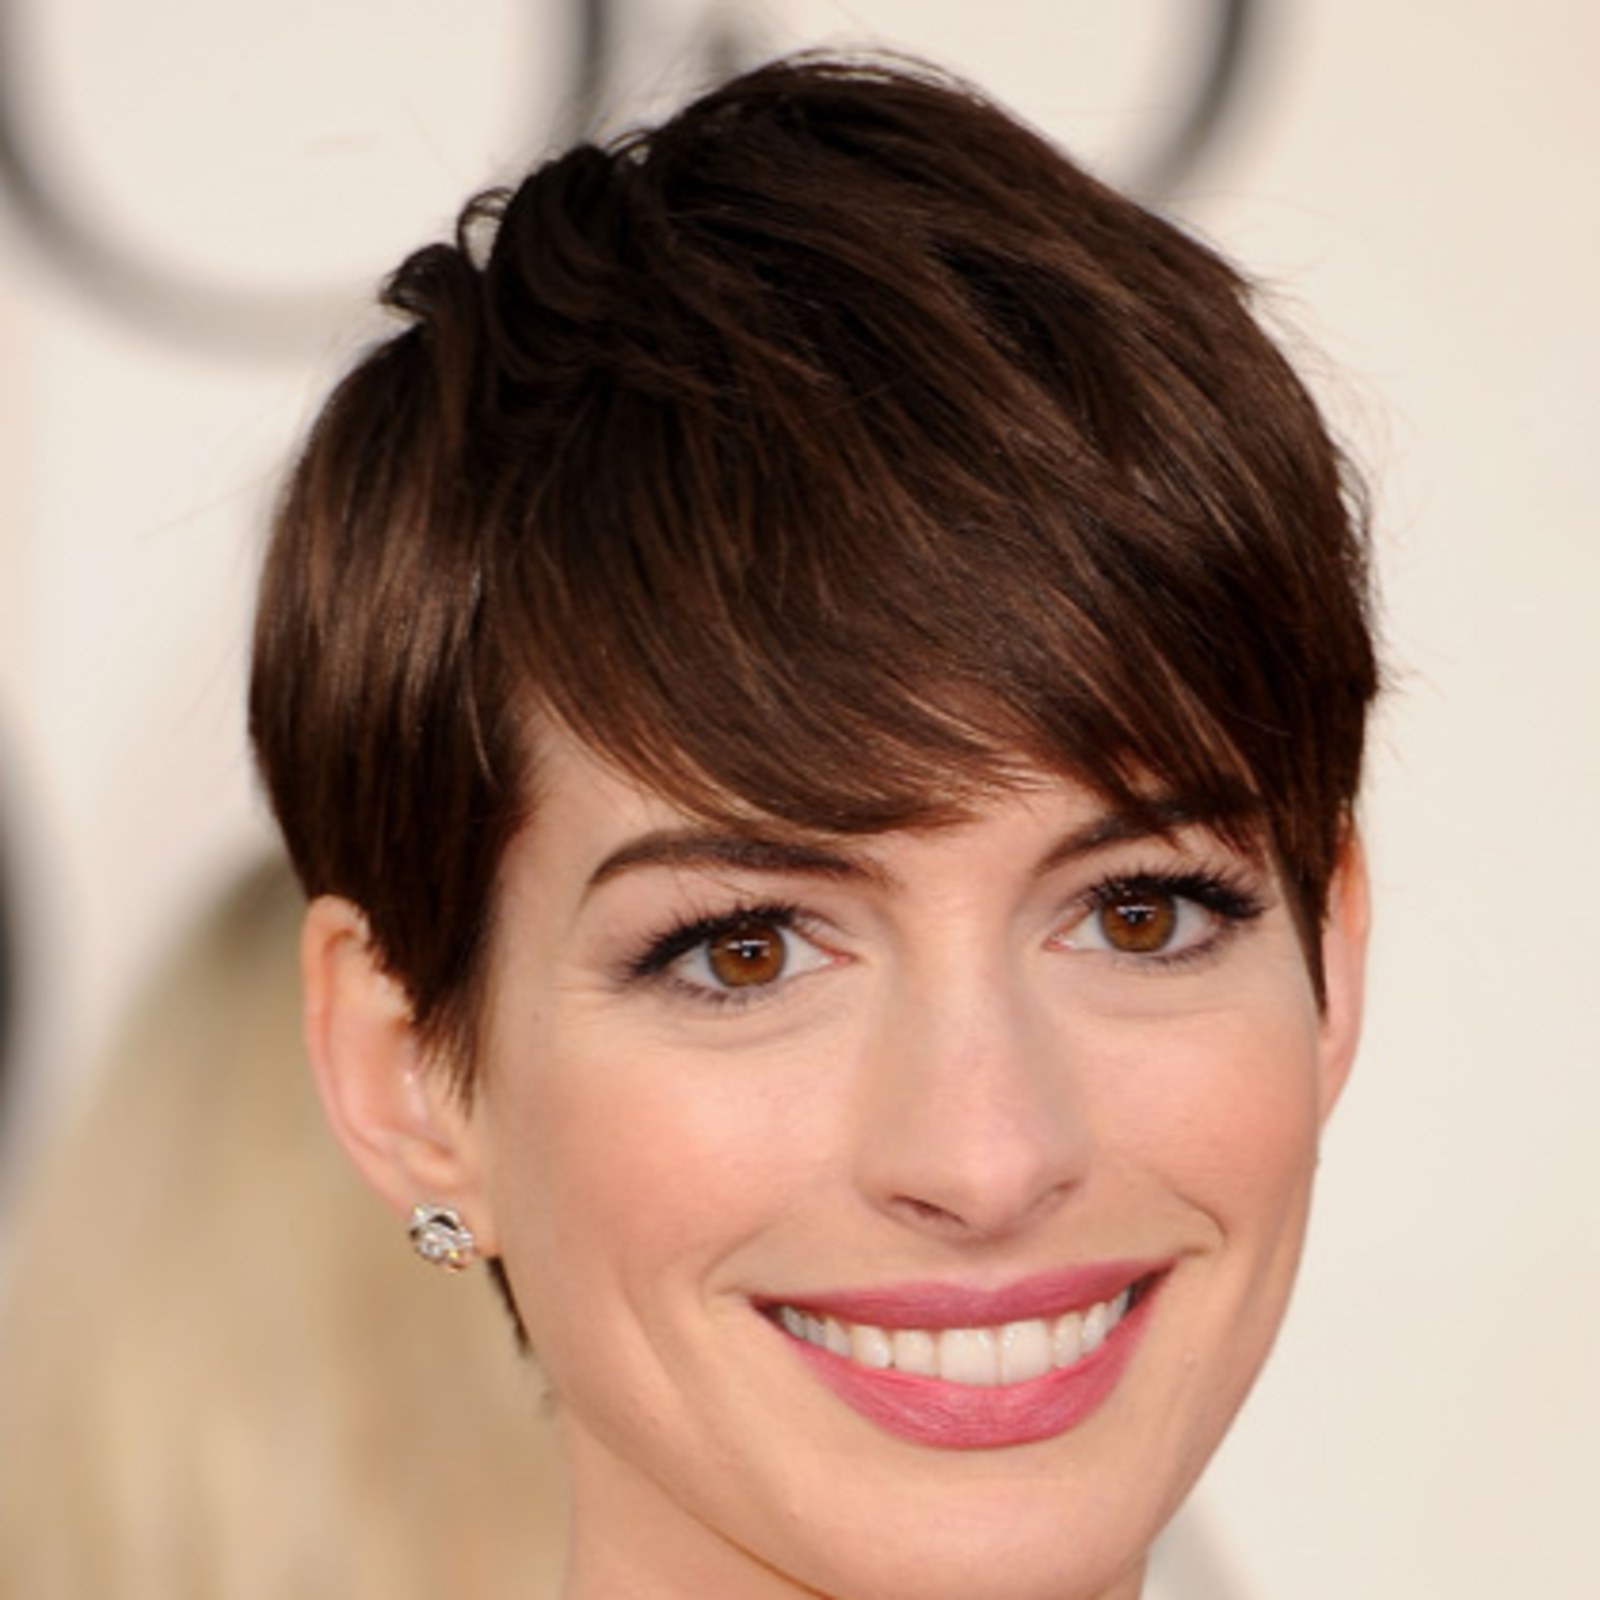 The Top 5 Haircuts For Women In Their 30S – Allure Pertaining To Short Haircuts For Women In Their 30S (View 3 of 25)